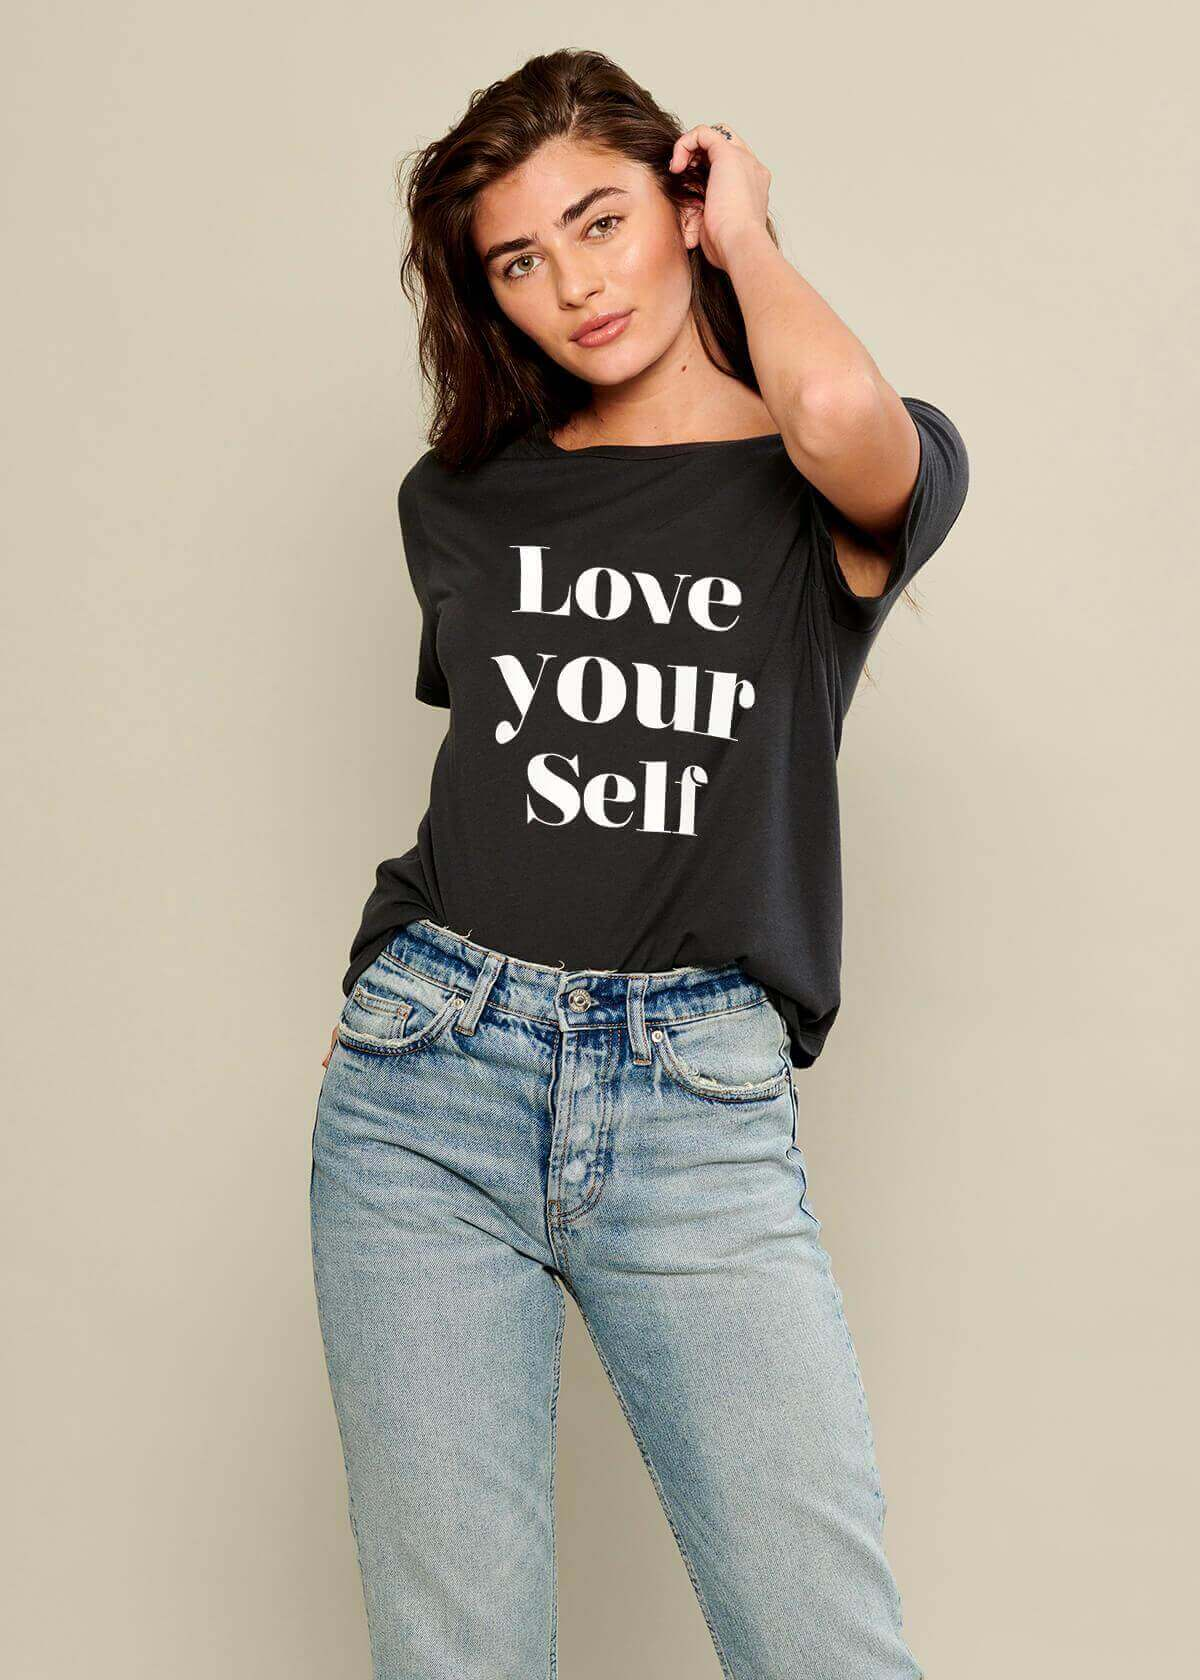 Lola - Loose Tee - Love Yourself - Black